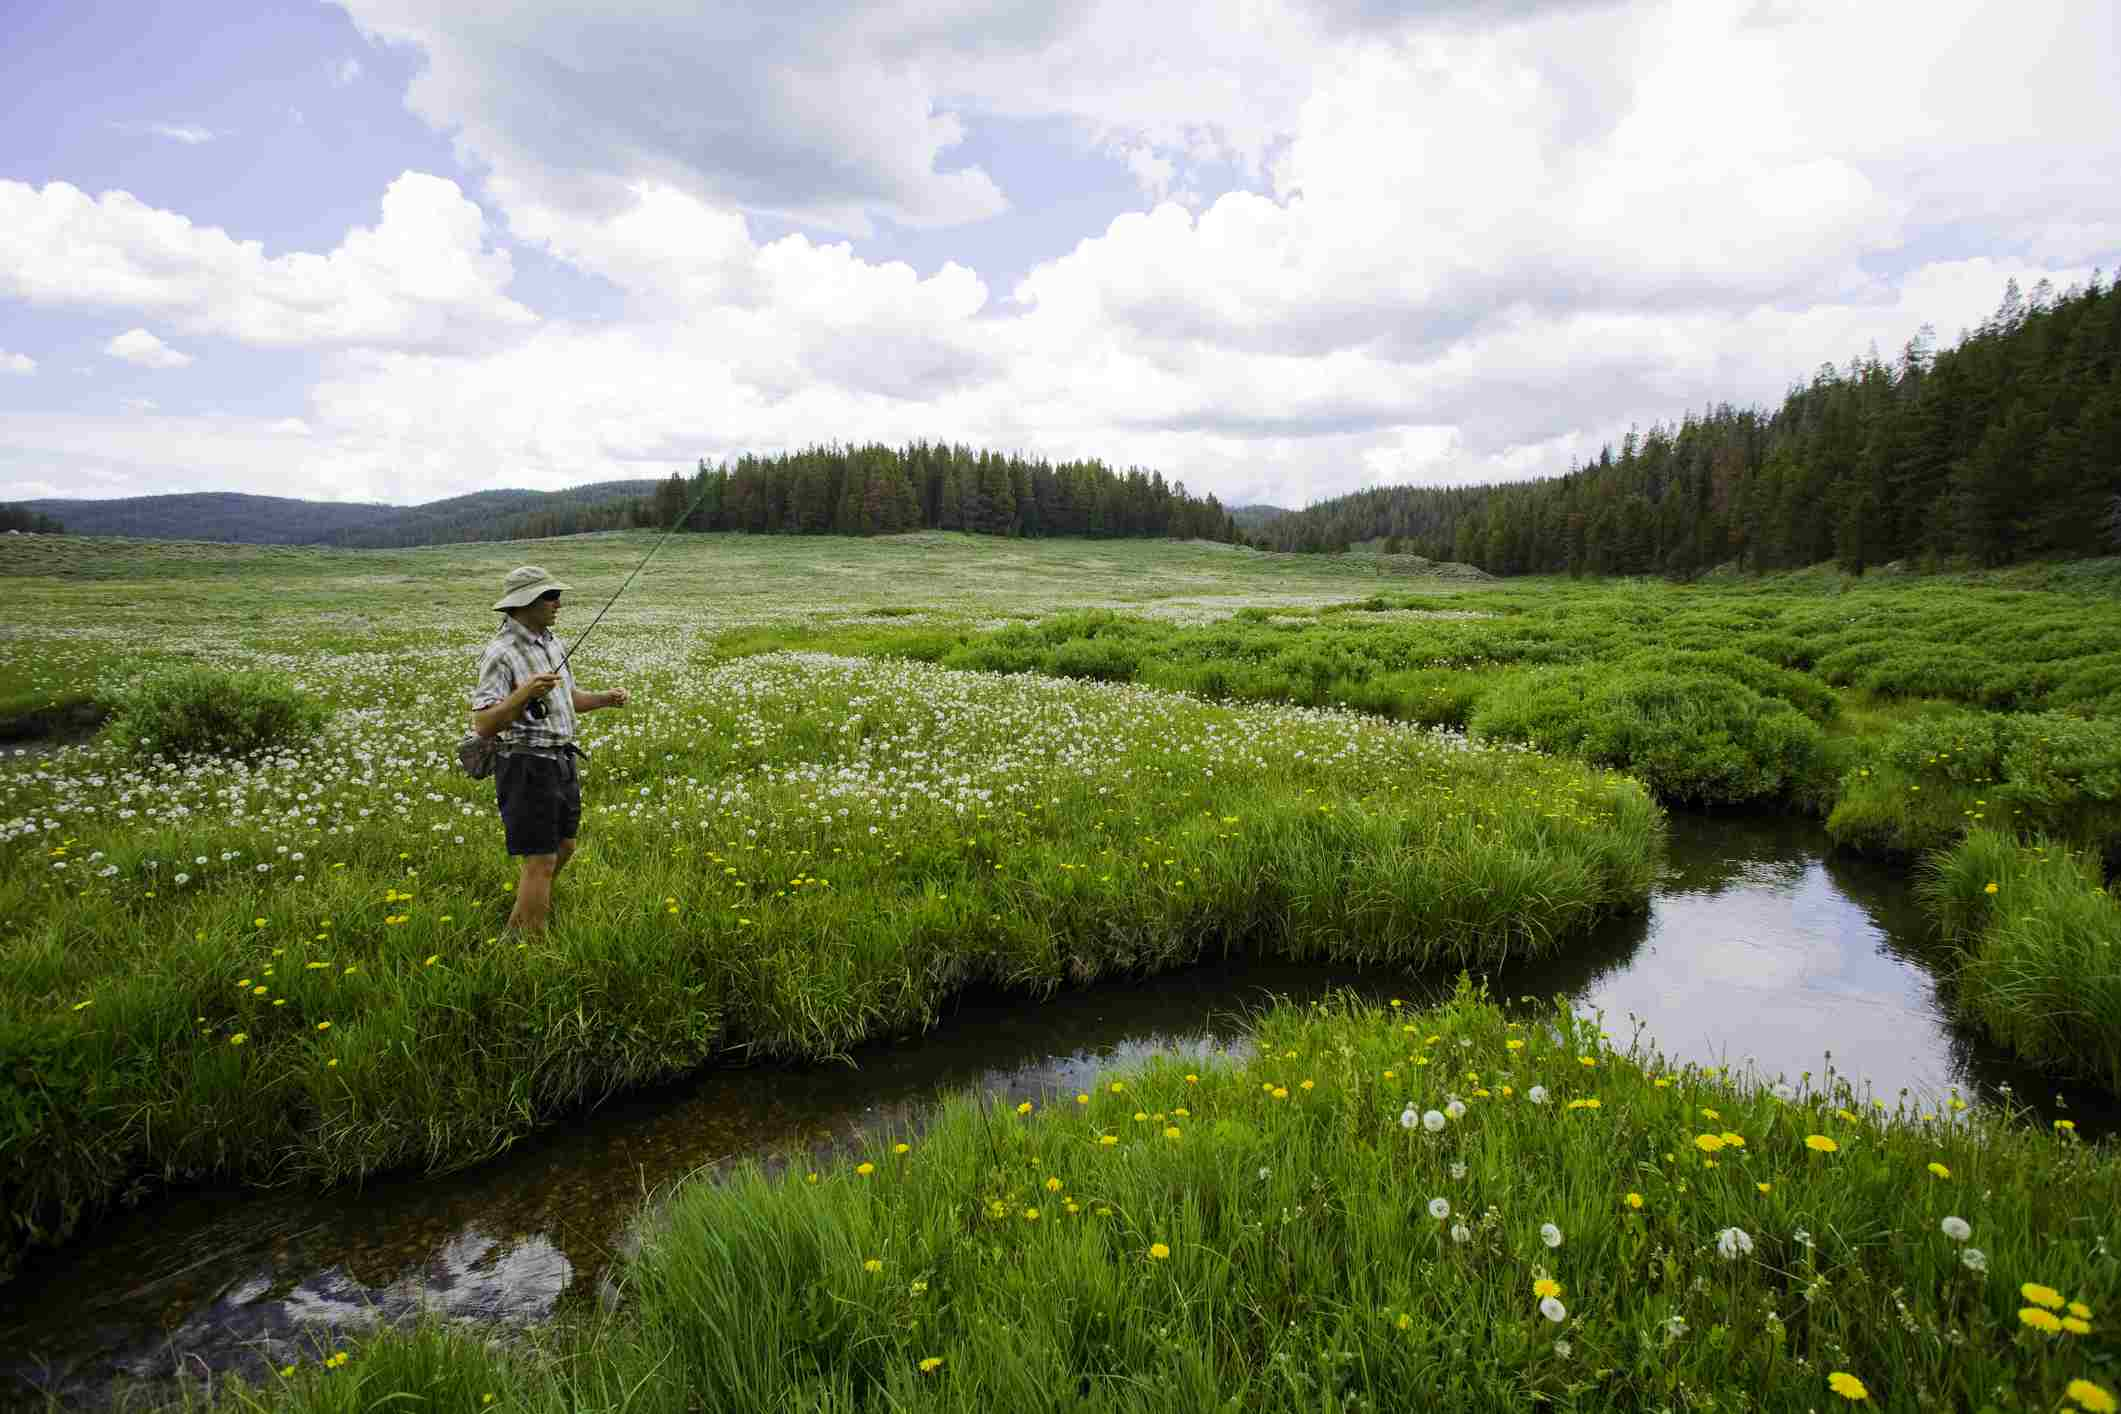 A man fishing in Steamboat Springs